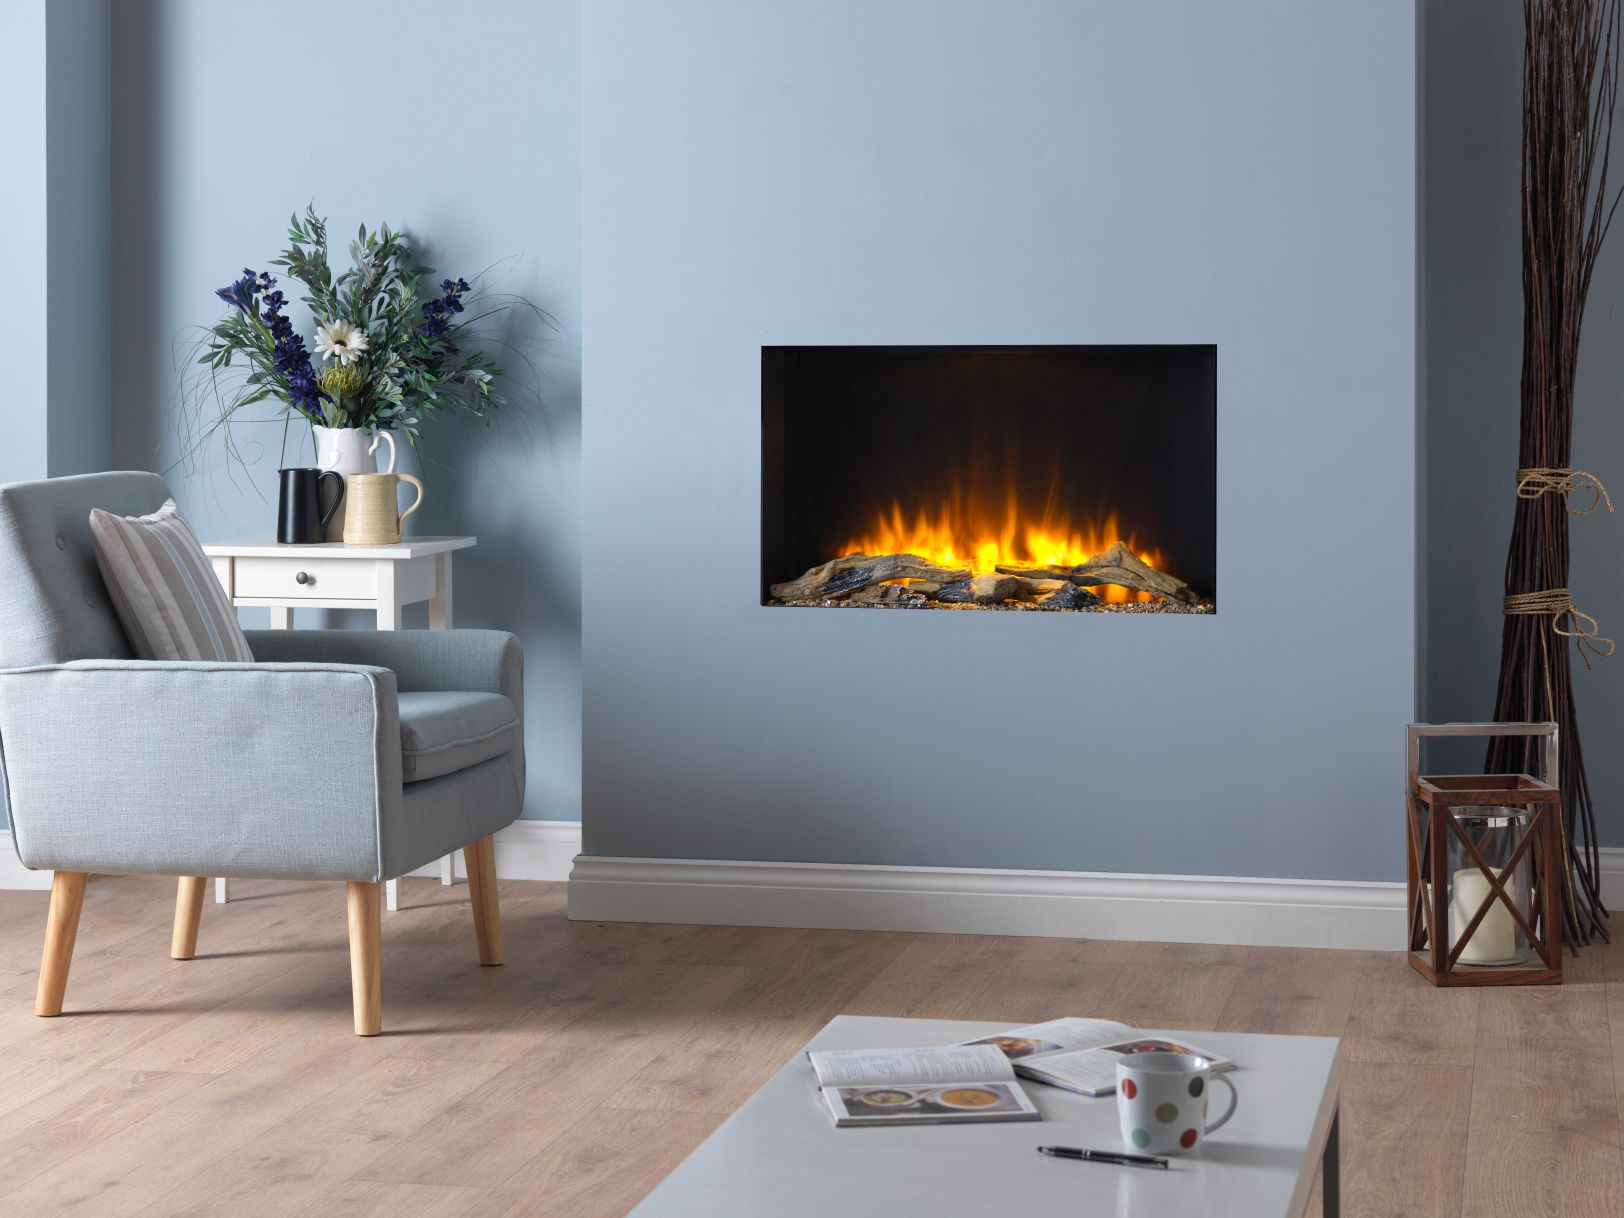 Infinity 780 Edgeless Electric Fire Hole in the Wall Electric